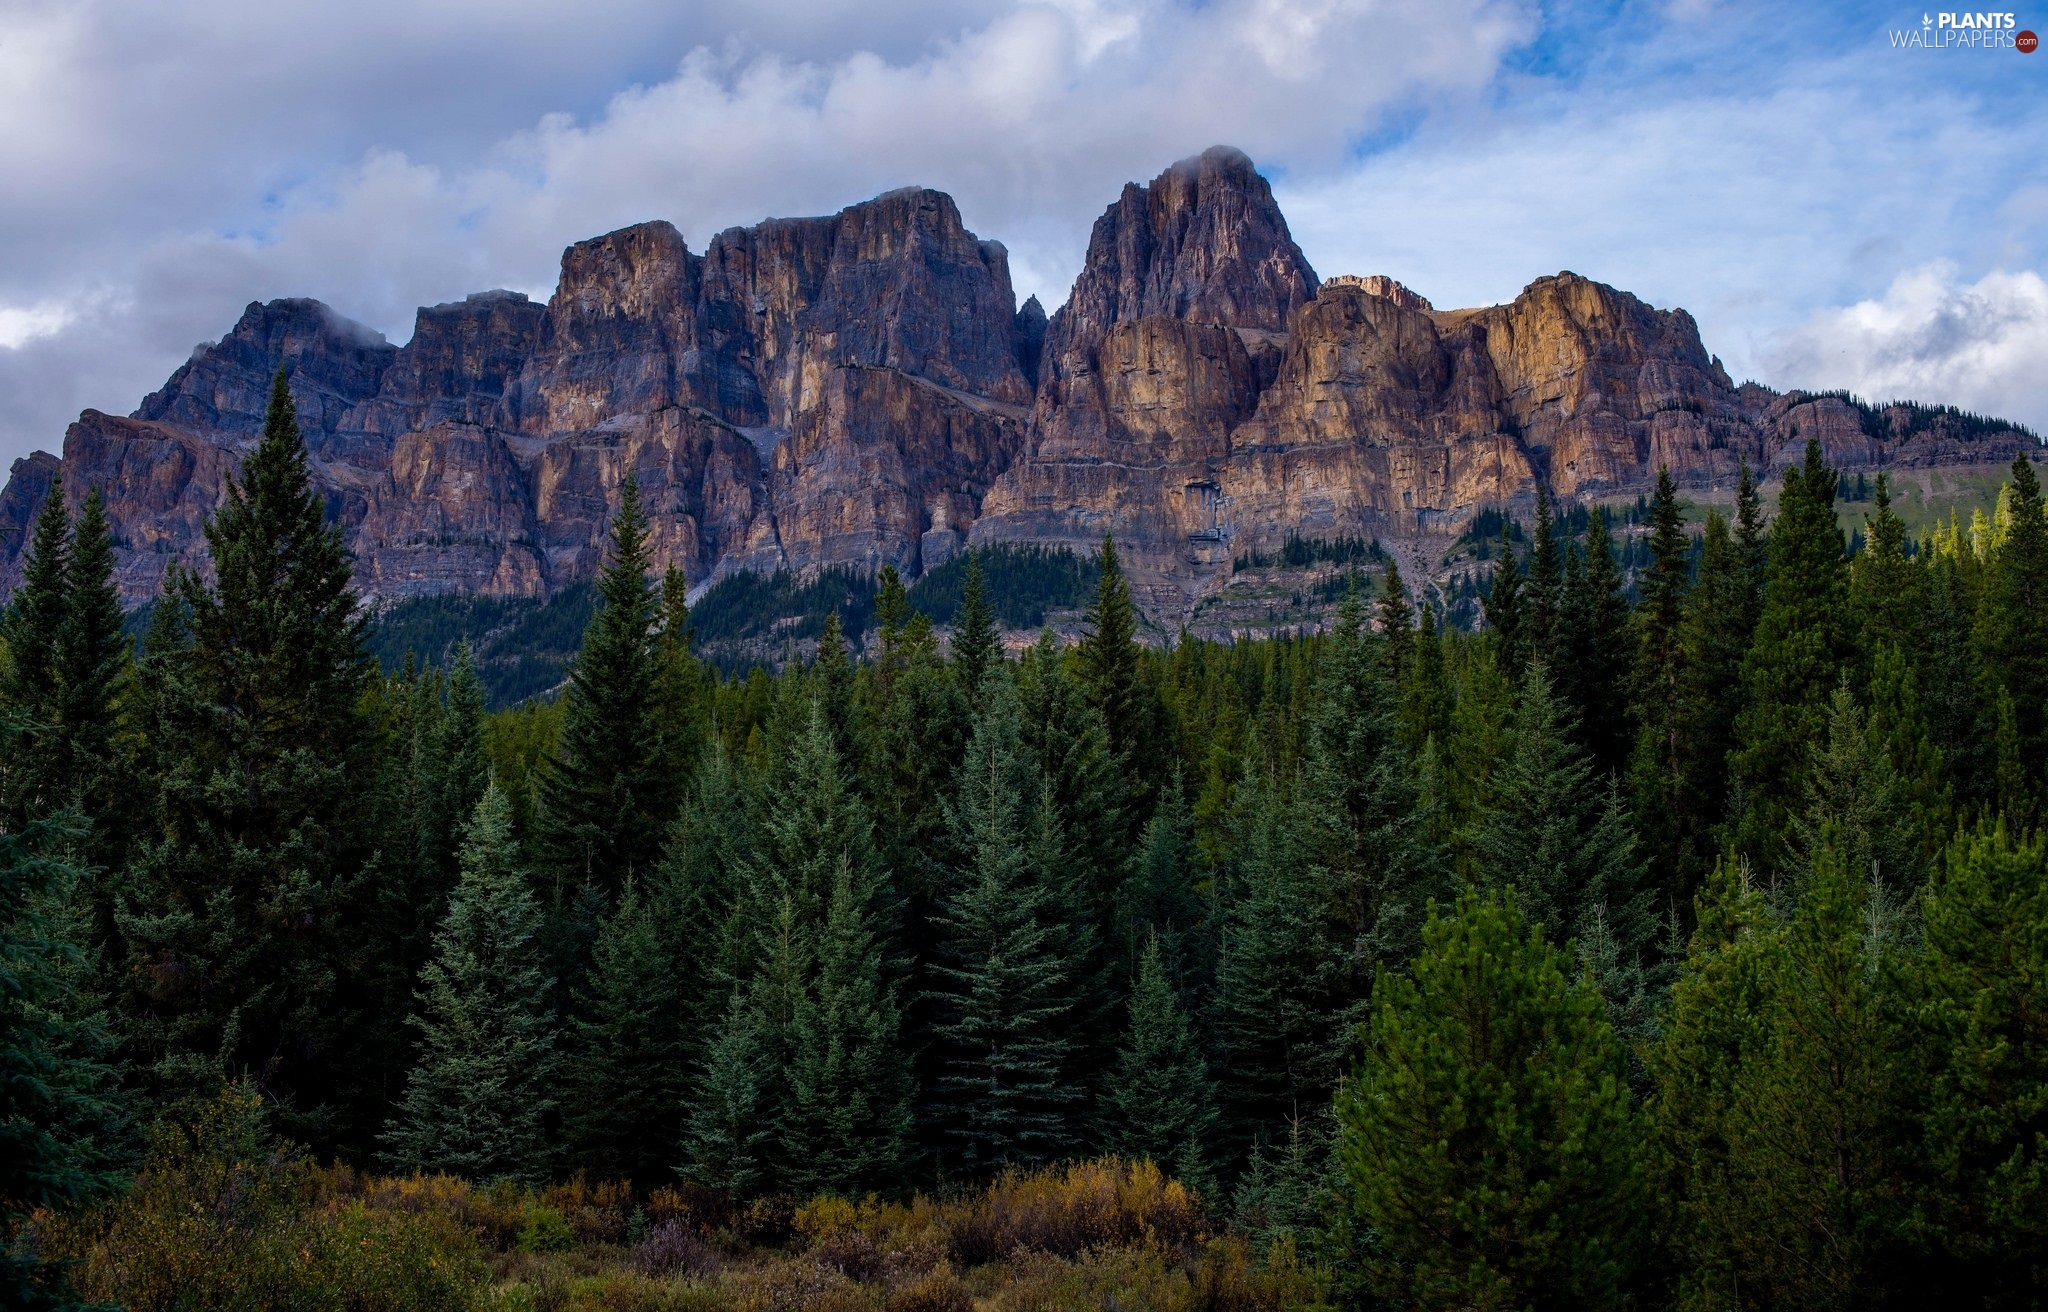 viewes, forest, Castle Mountain, Canada, trees, Banff National Park, Mountains